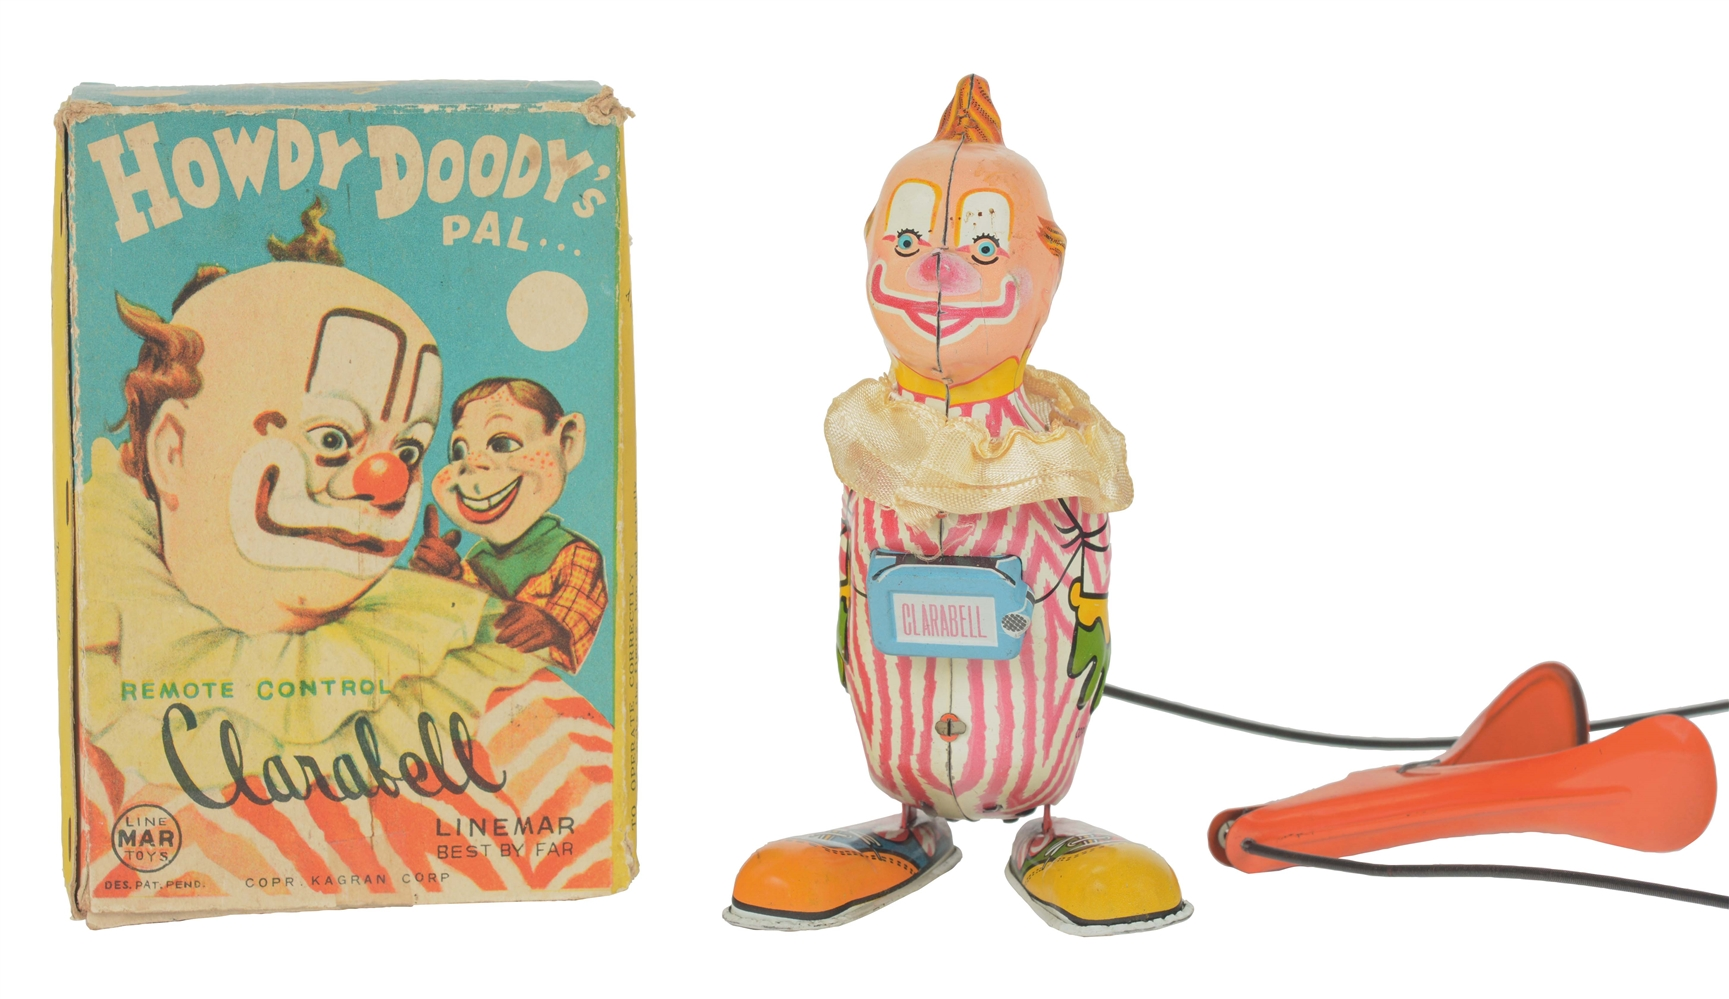 Scarce Tin Litho Clarabell Linemar Squeeze Toy with Box.